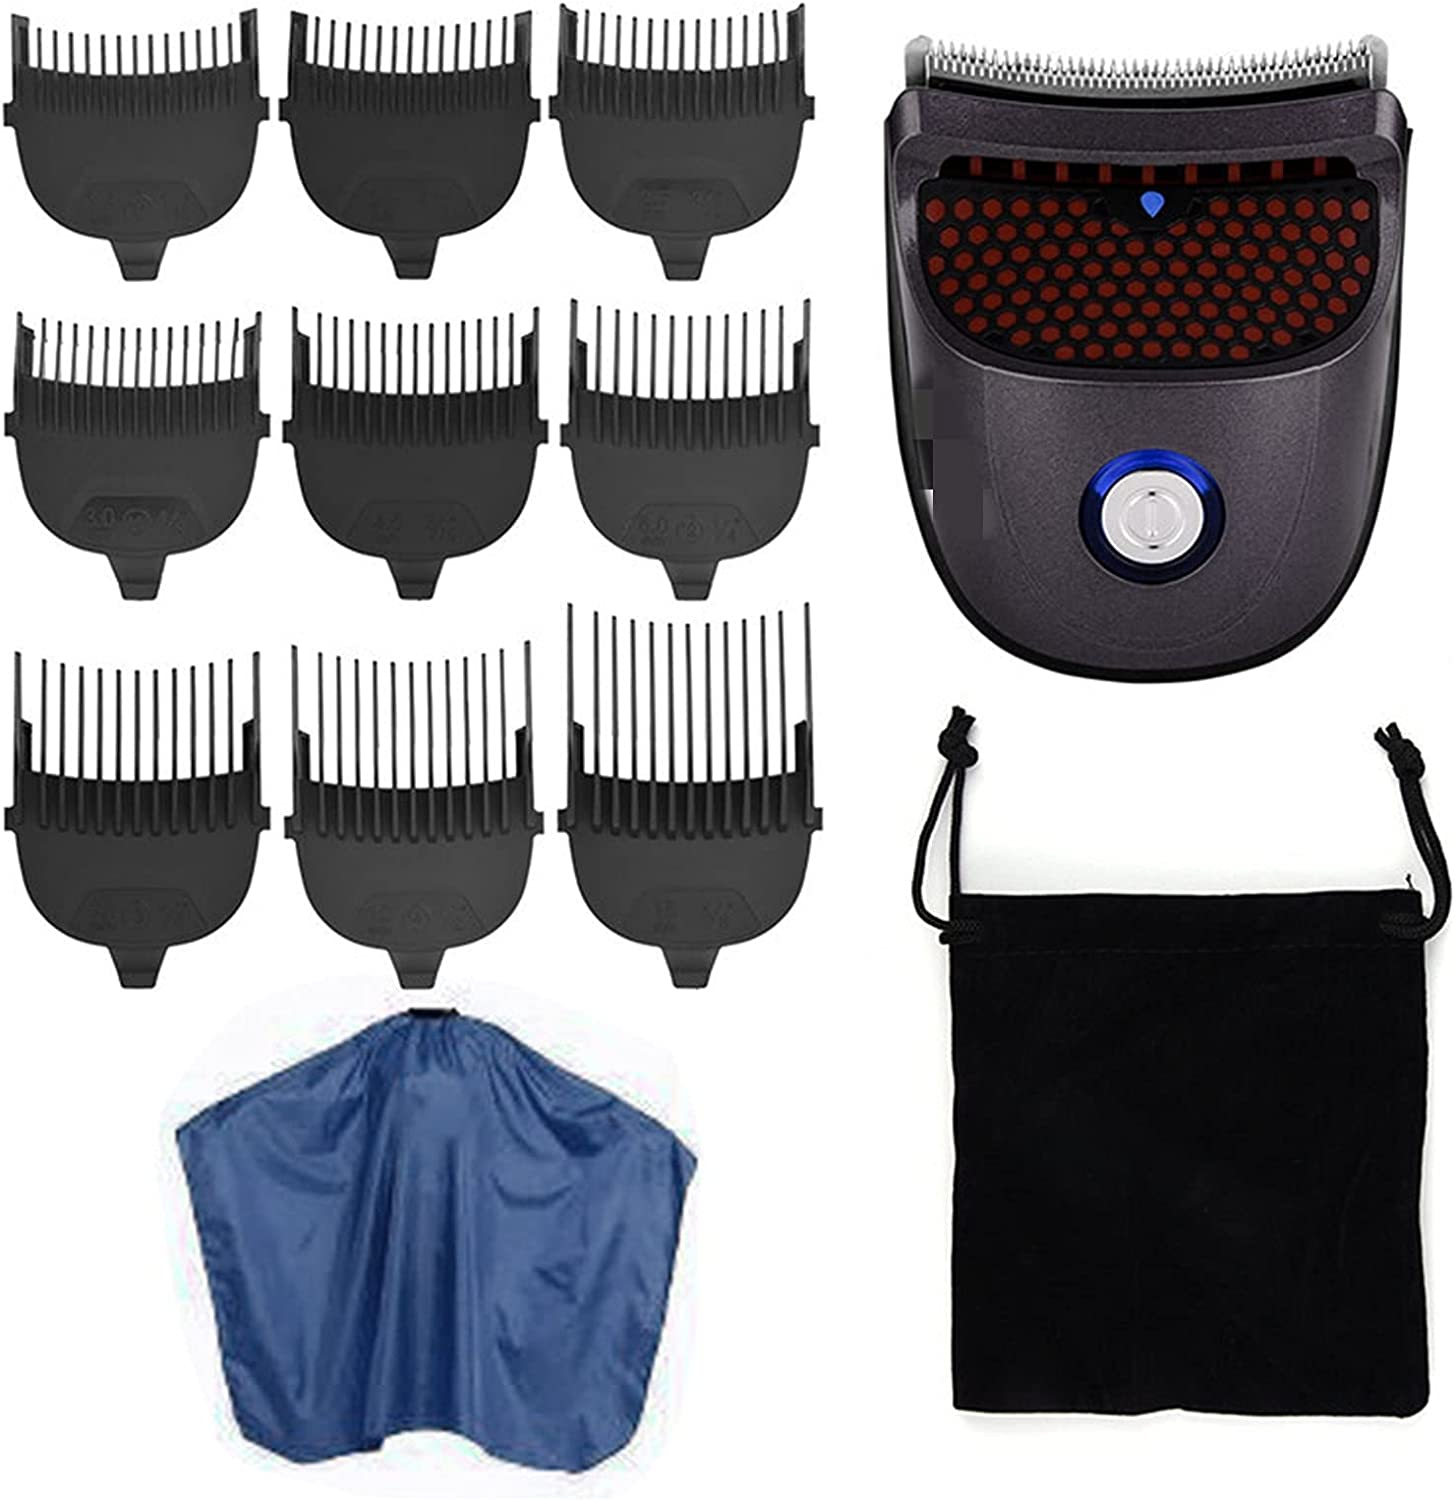 SGADSH Special sale item Hair Milwaukee Mall Clippers Men Mini with Hai Clipper Rechargeable